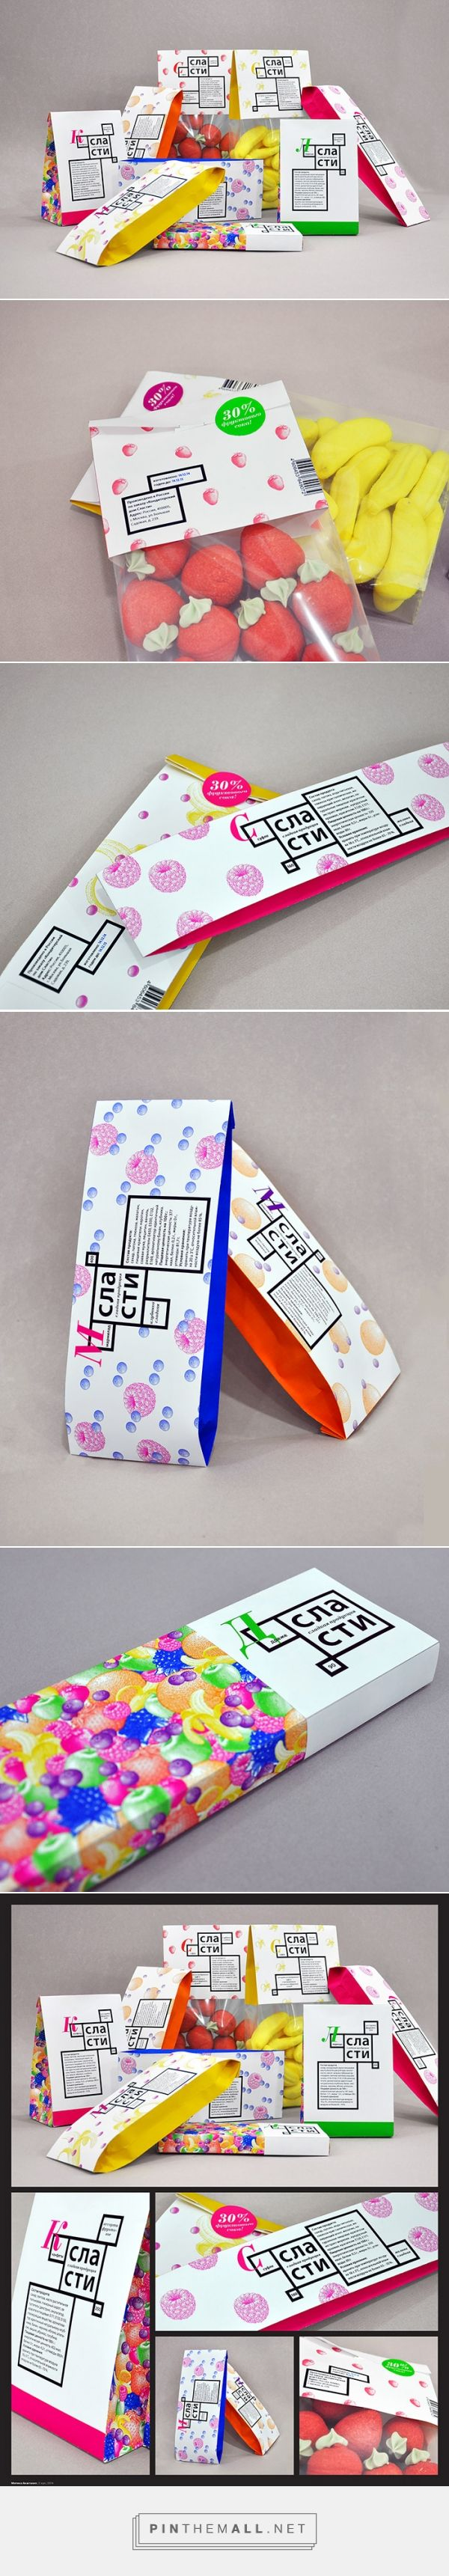 Packaging for sweets by Mitina Anastasia (student work) via Package Inspiration curated by Packaging Diva PD. Who wants some candy now?